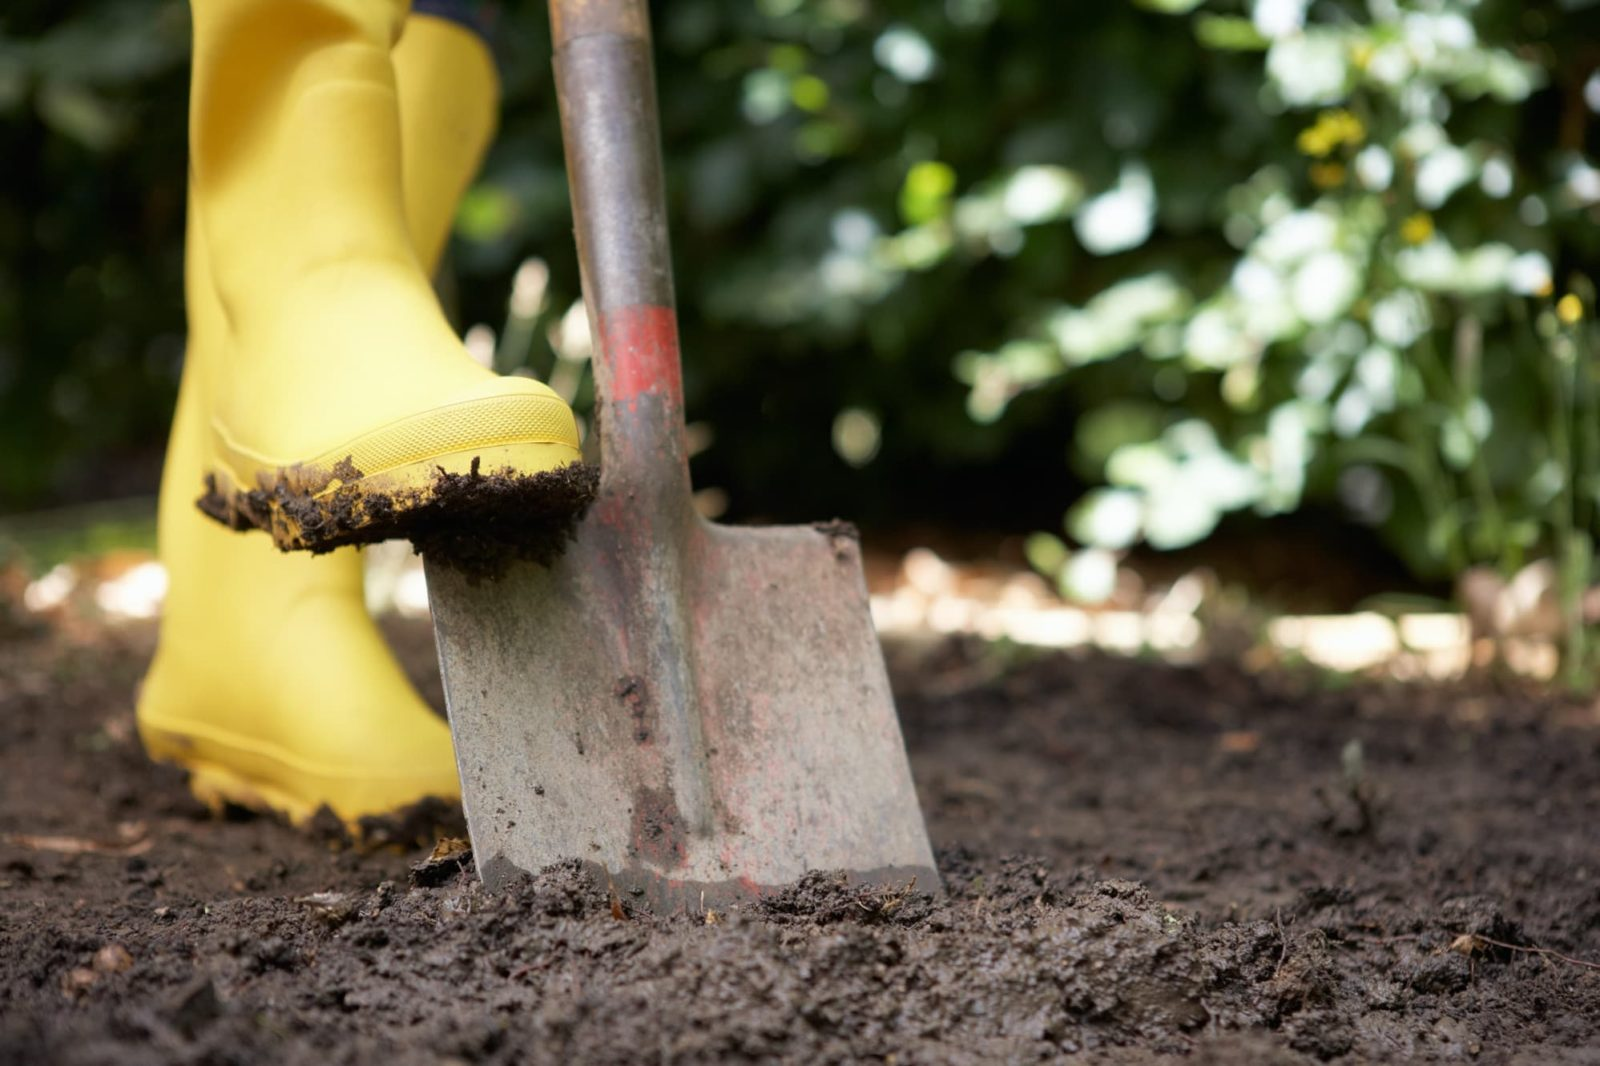 spade being dug into soil with yellow wellies